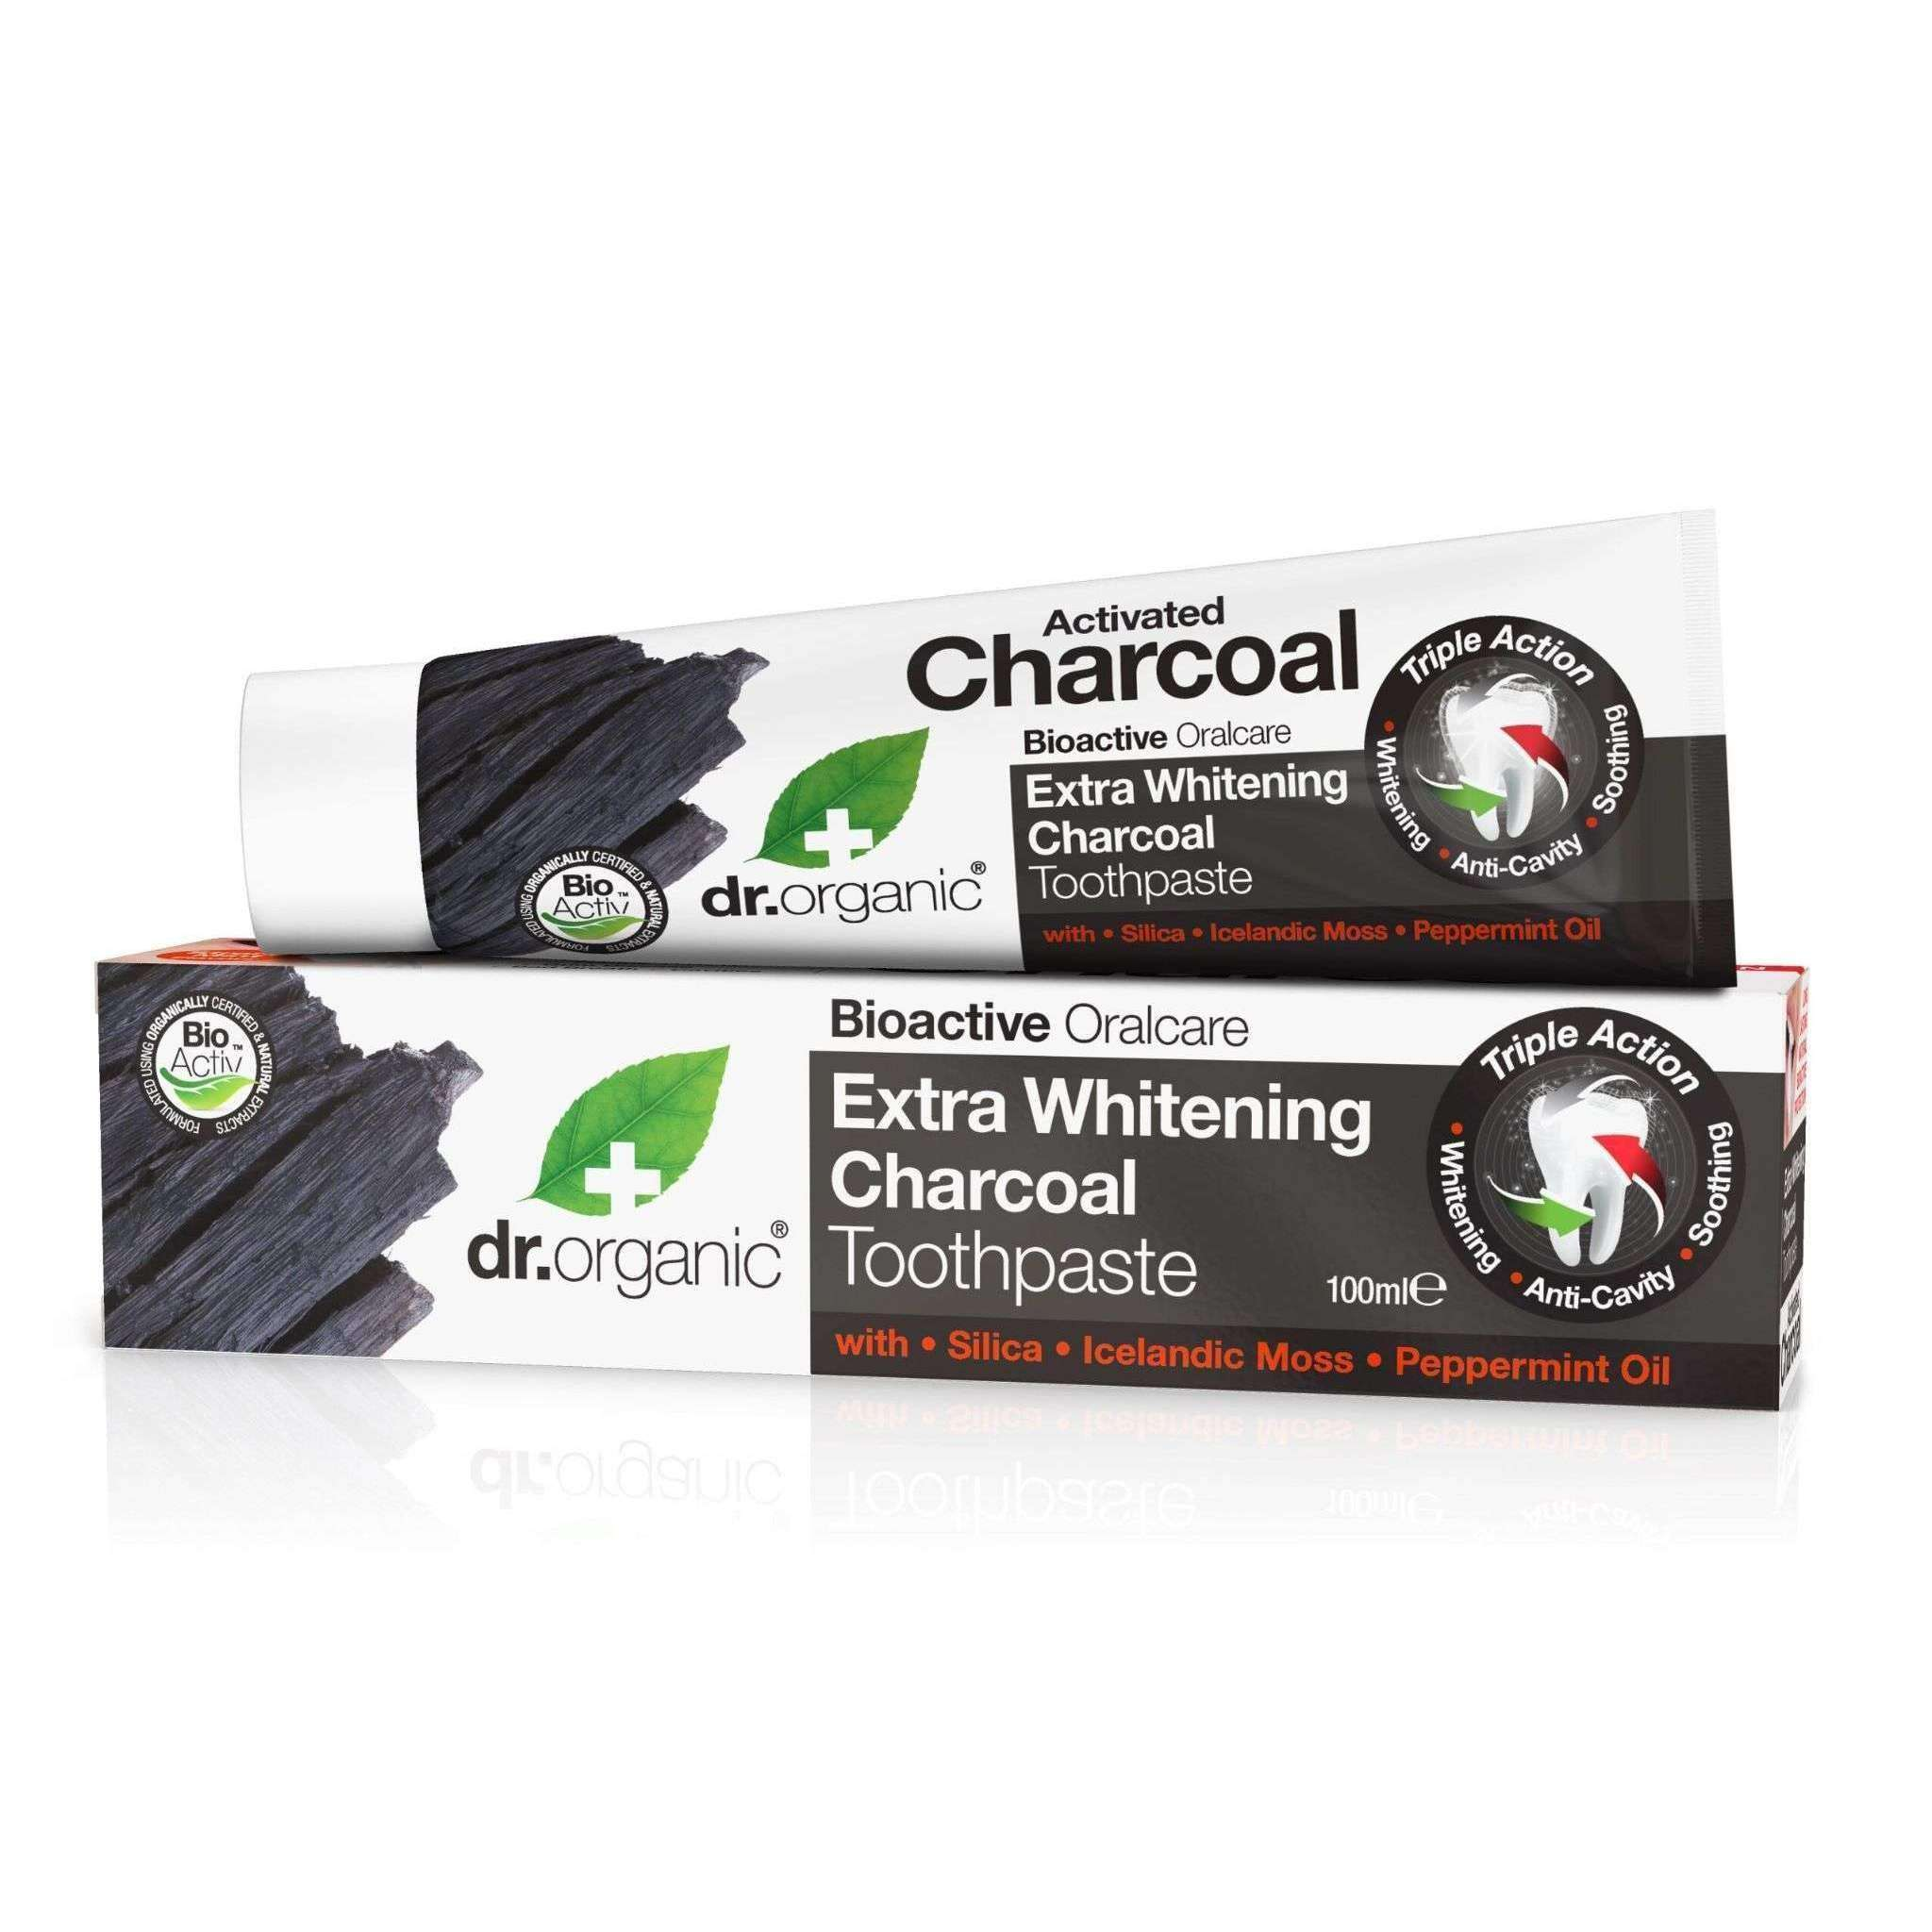 Dr.Organic Activated Charcoal Whitening Toothpaste